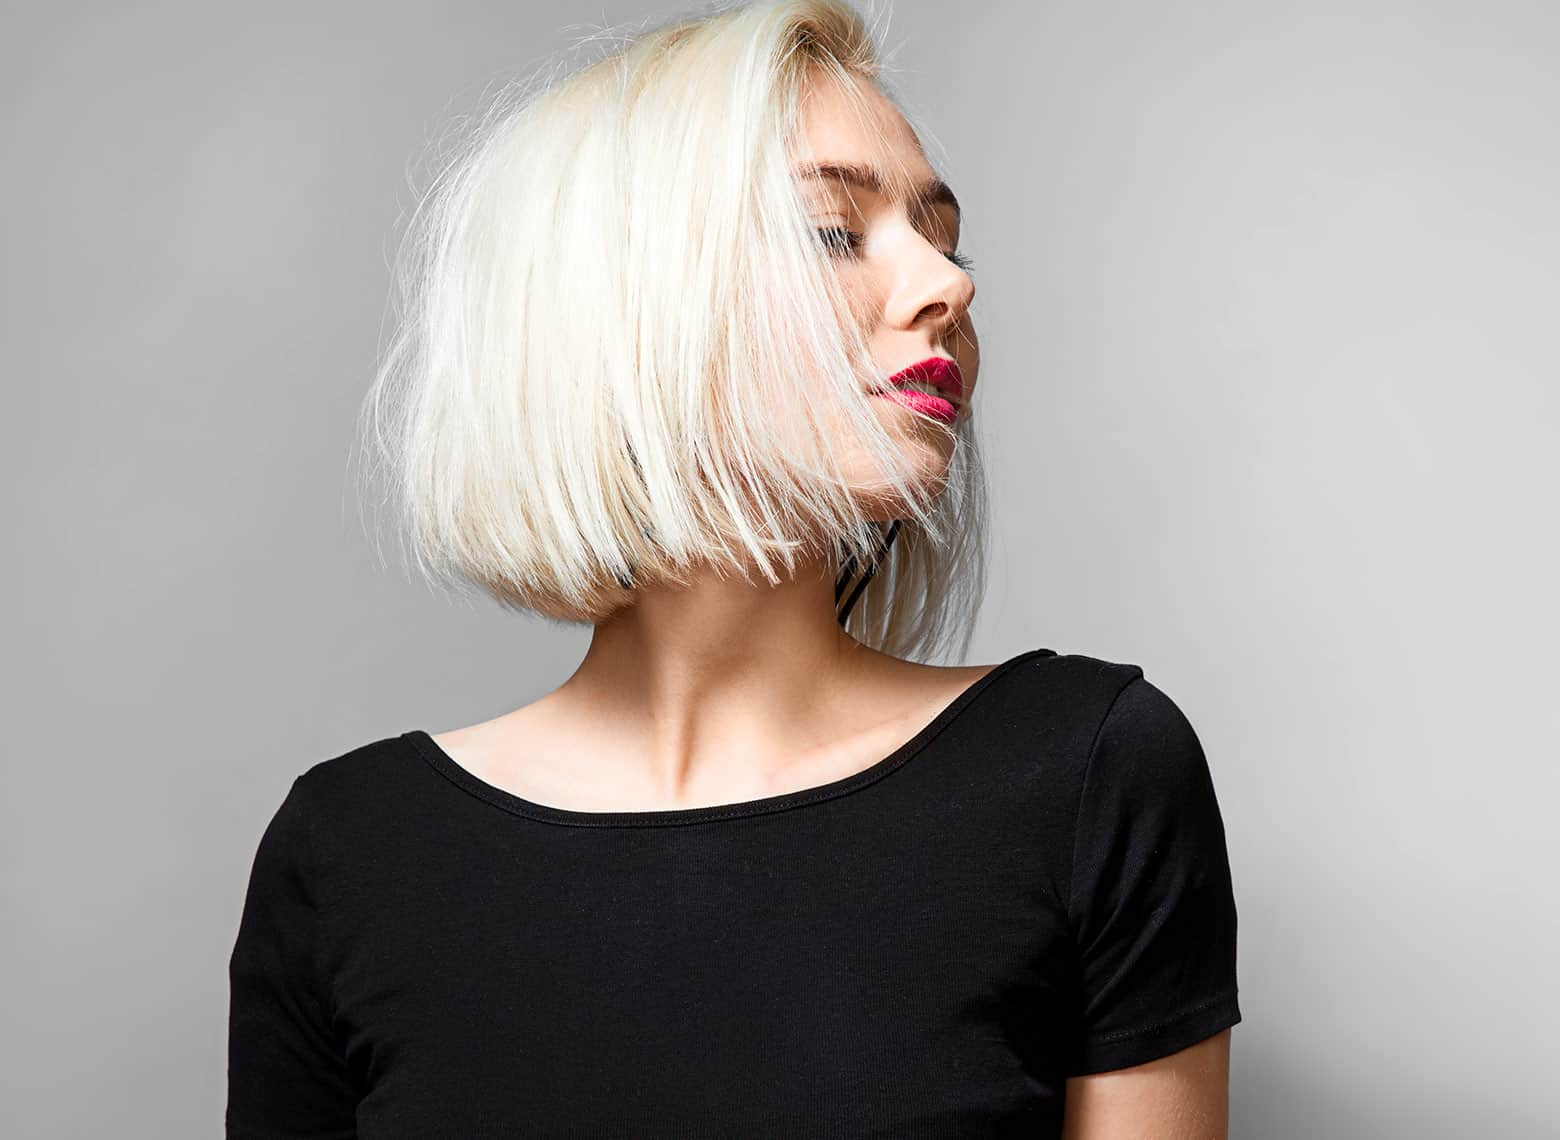 woman with short razored cut